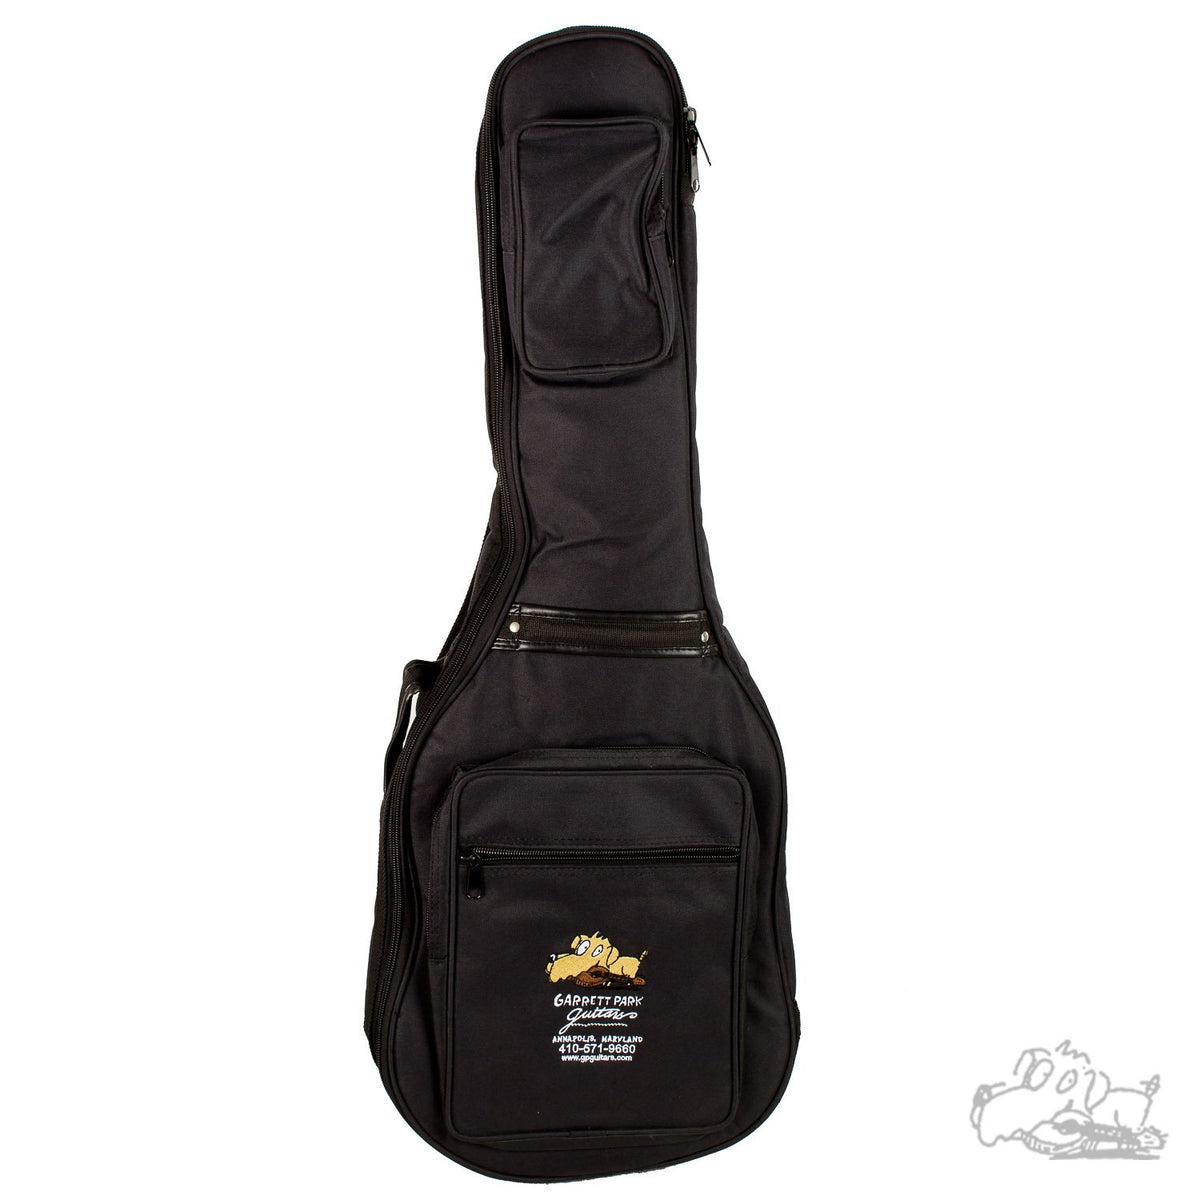 Garrett Park Guitars Embroidered Super Deluxe Electric Guitar Nylon Soft Case Gig Bag